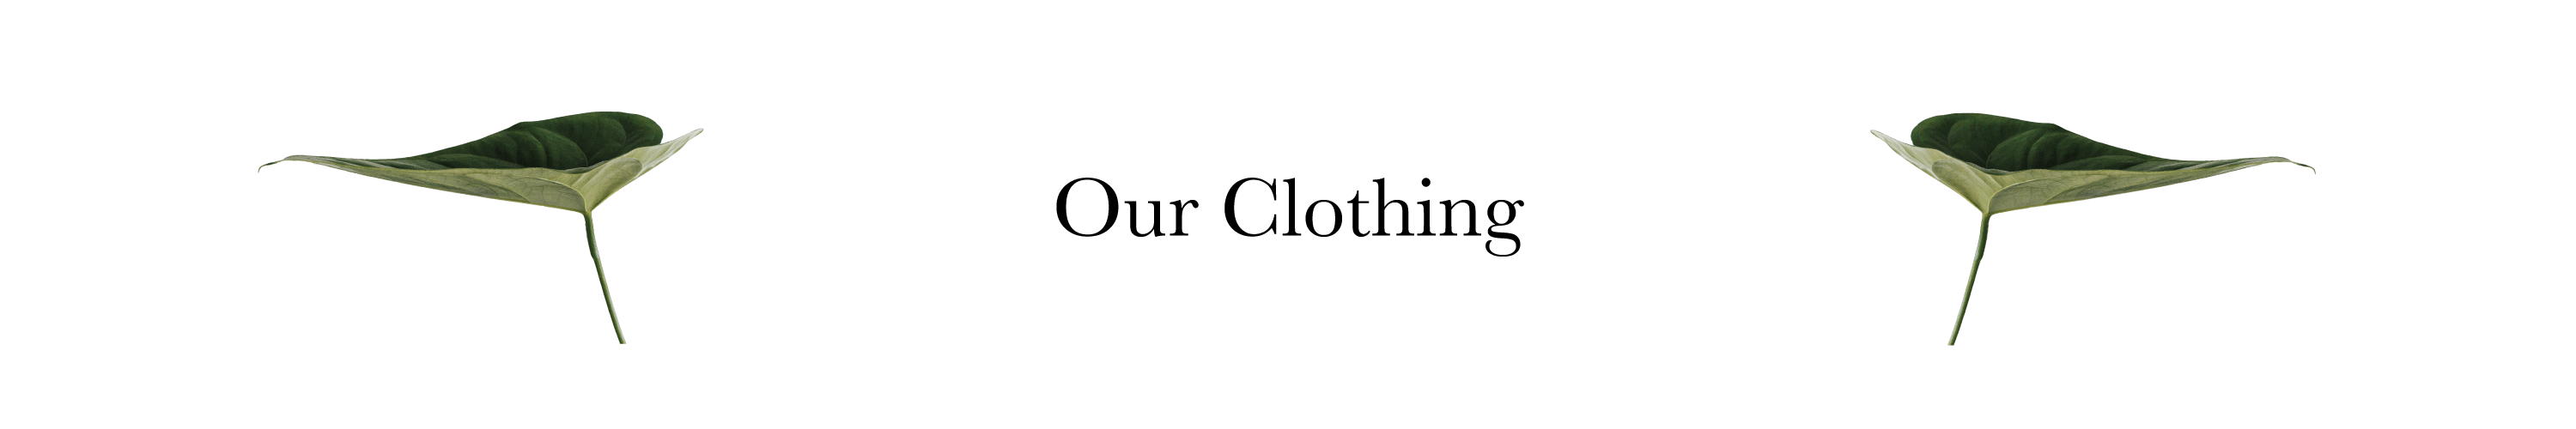 Our ethical and sustainable clothing for the modern woman